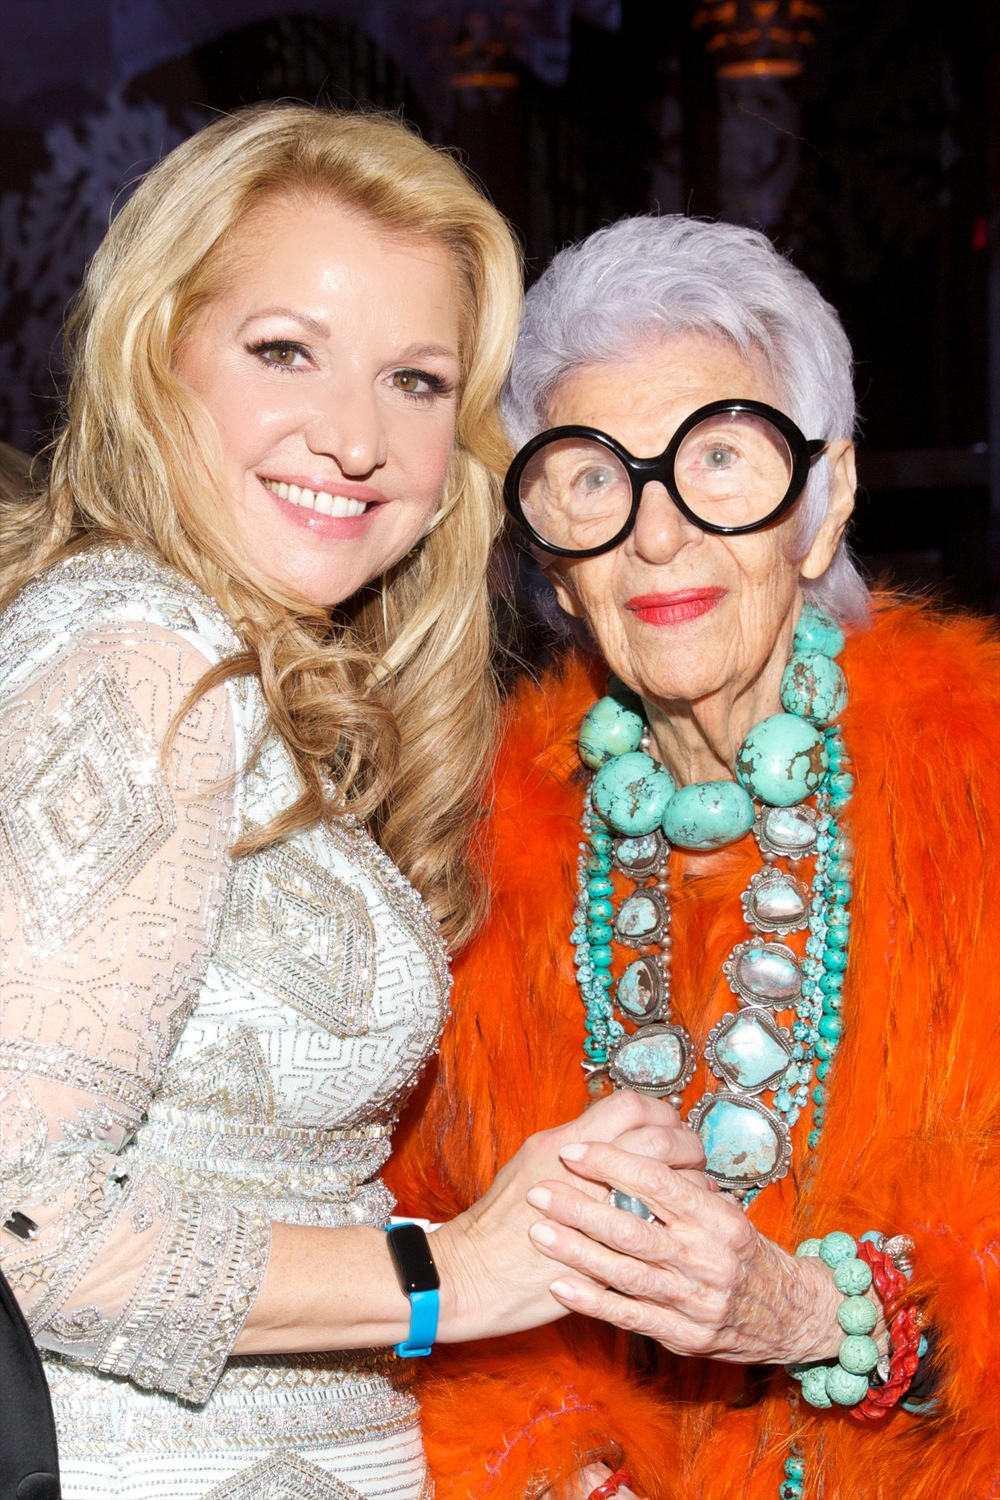 Mindy Grossman and Iris Apfel ©2015 Julie Skarratt Photography, Inc./U.S. Fund for UNICEF